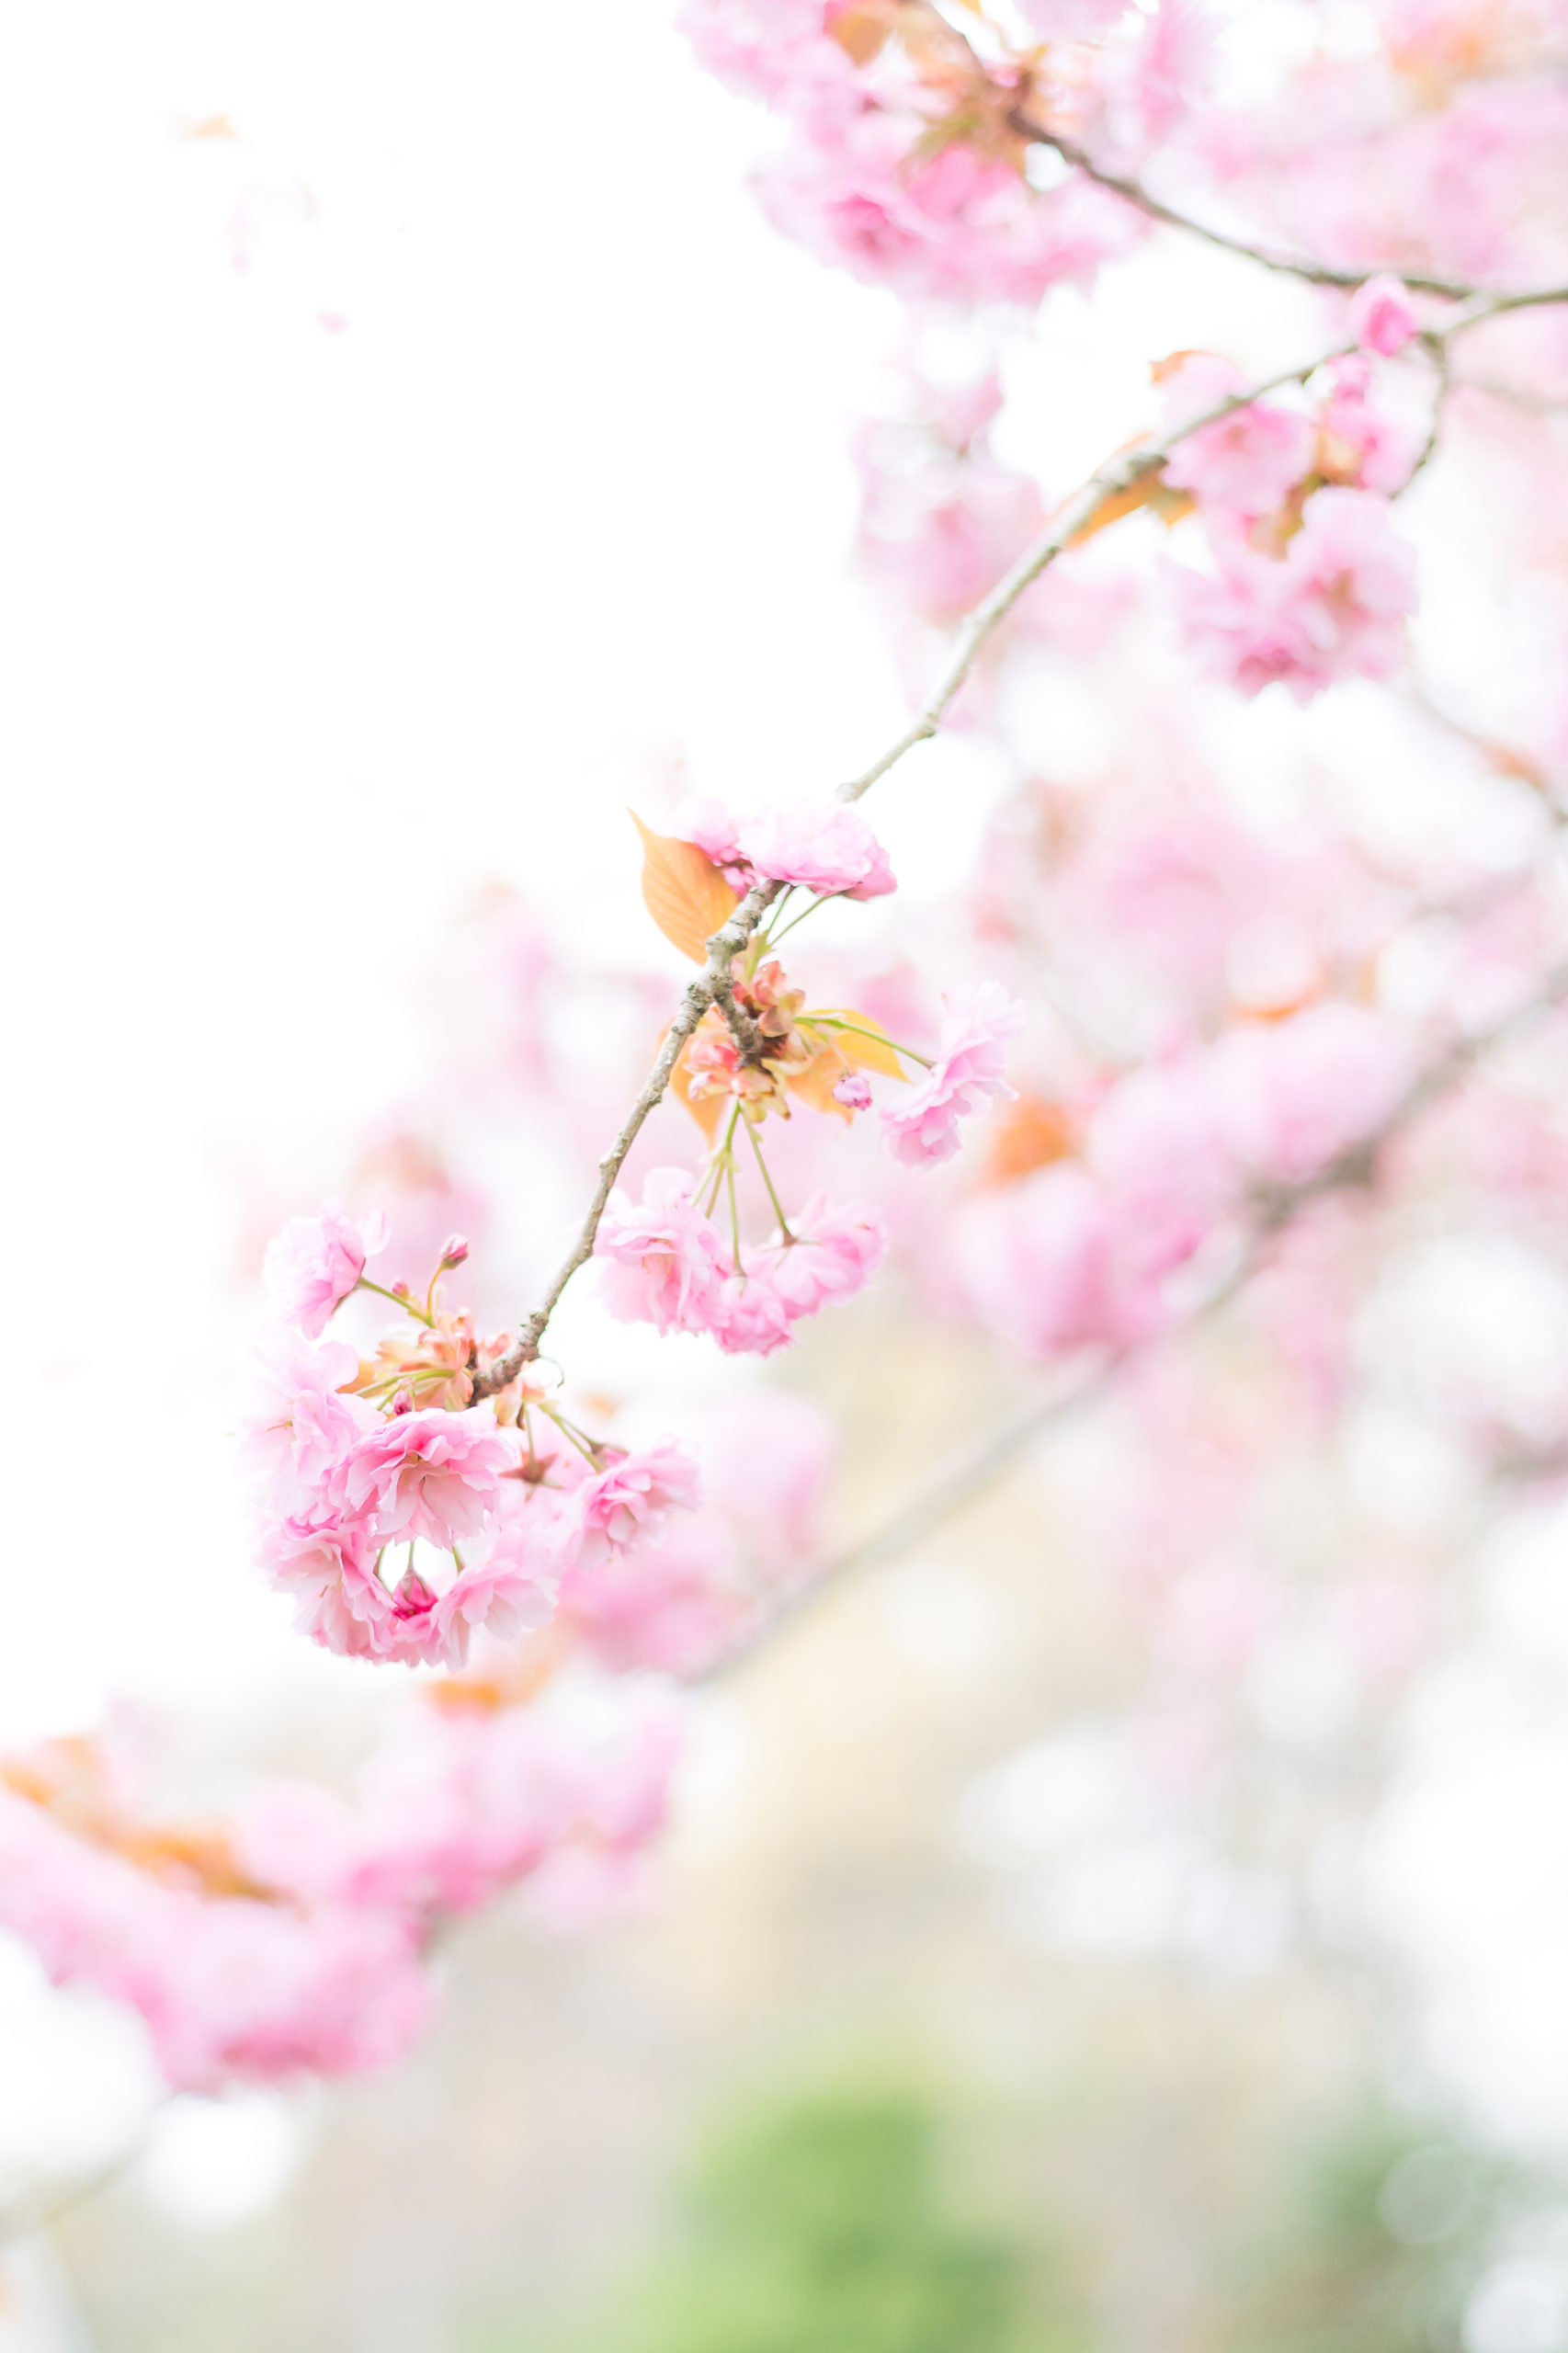 up close shot of a beautiful pink bloom from a cherry tree during a mother's day photoshoot